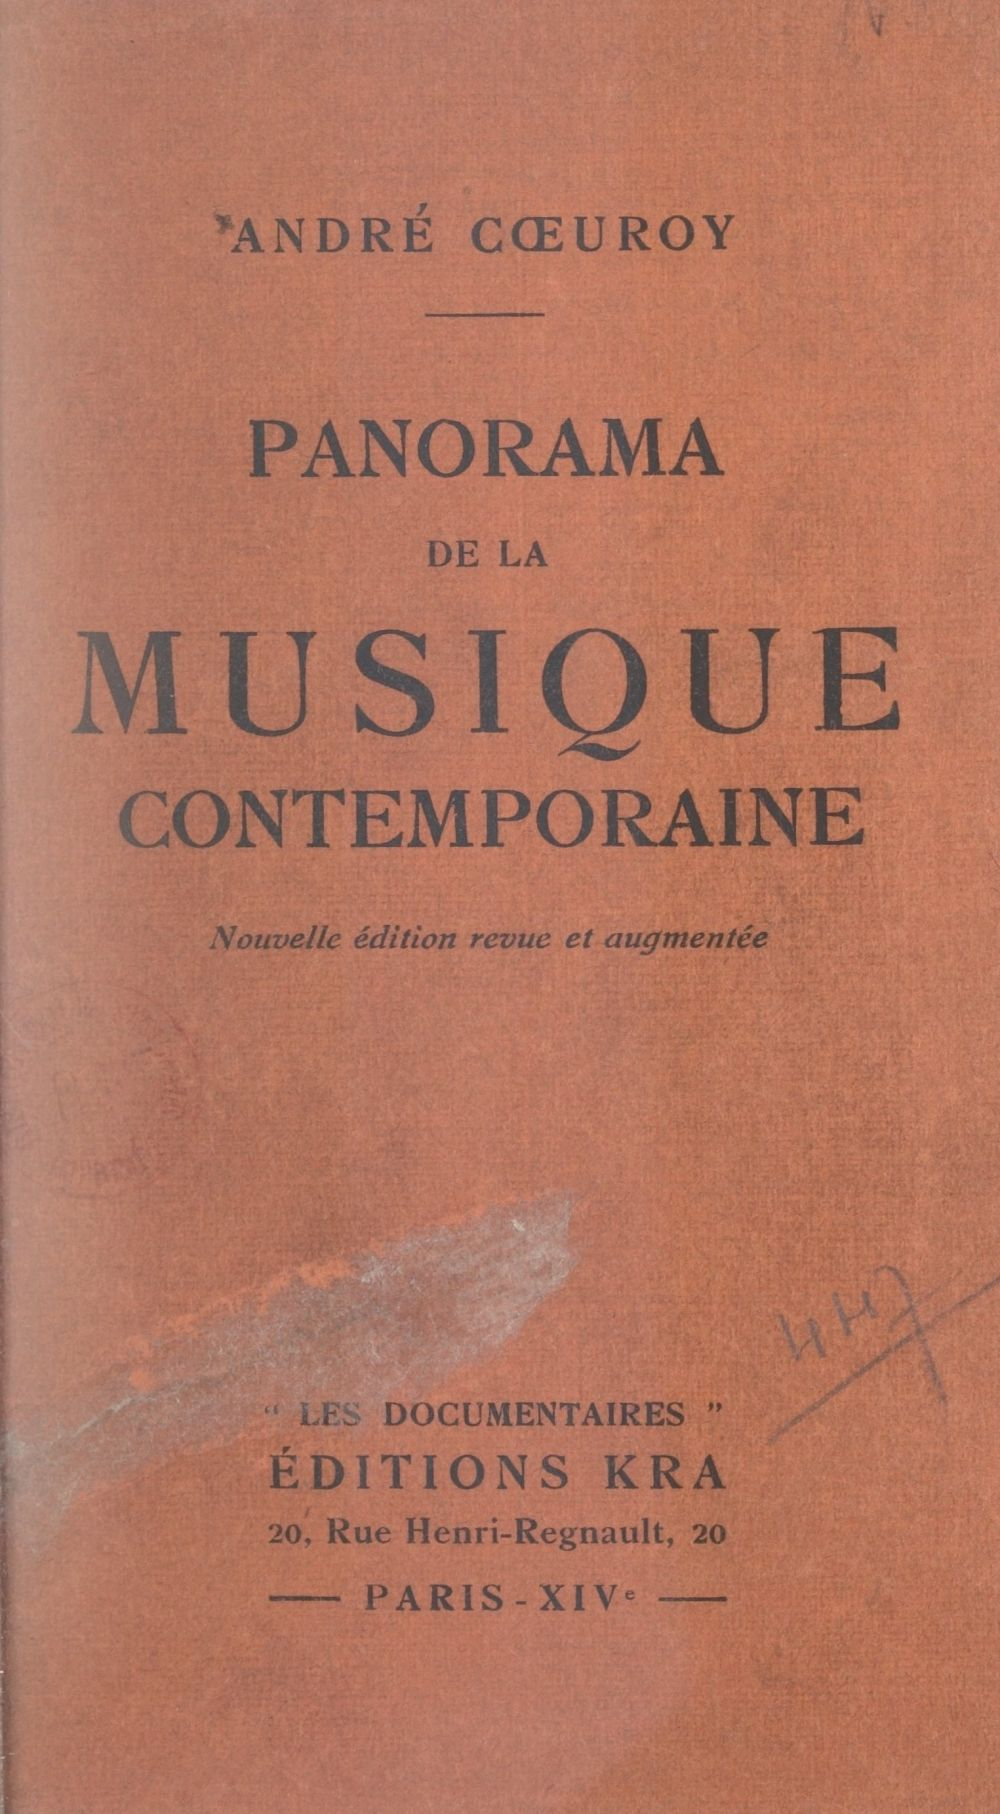 Panorama de la musique contemporaine